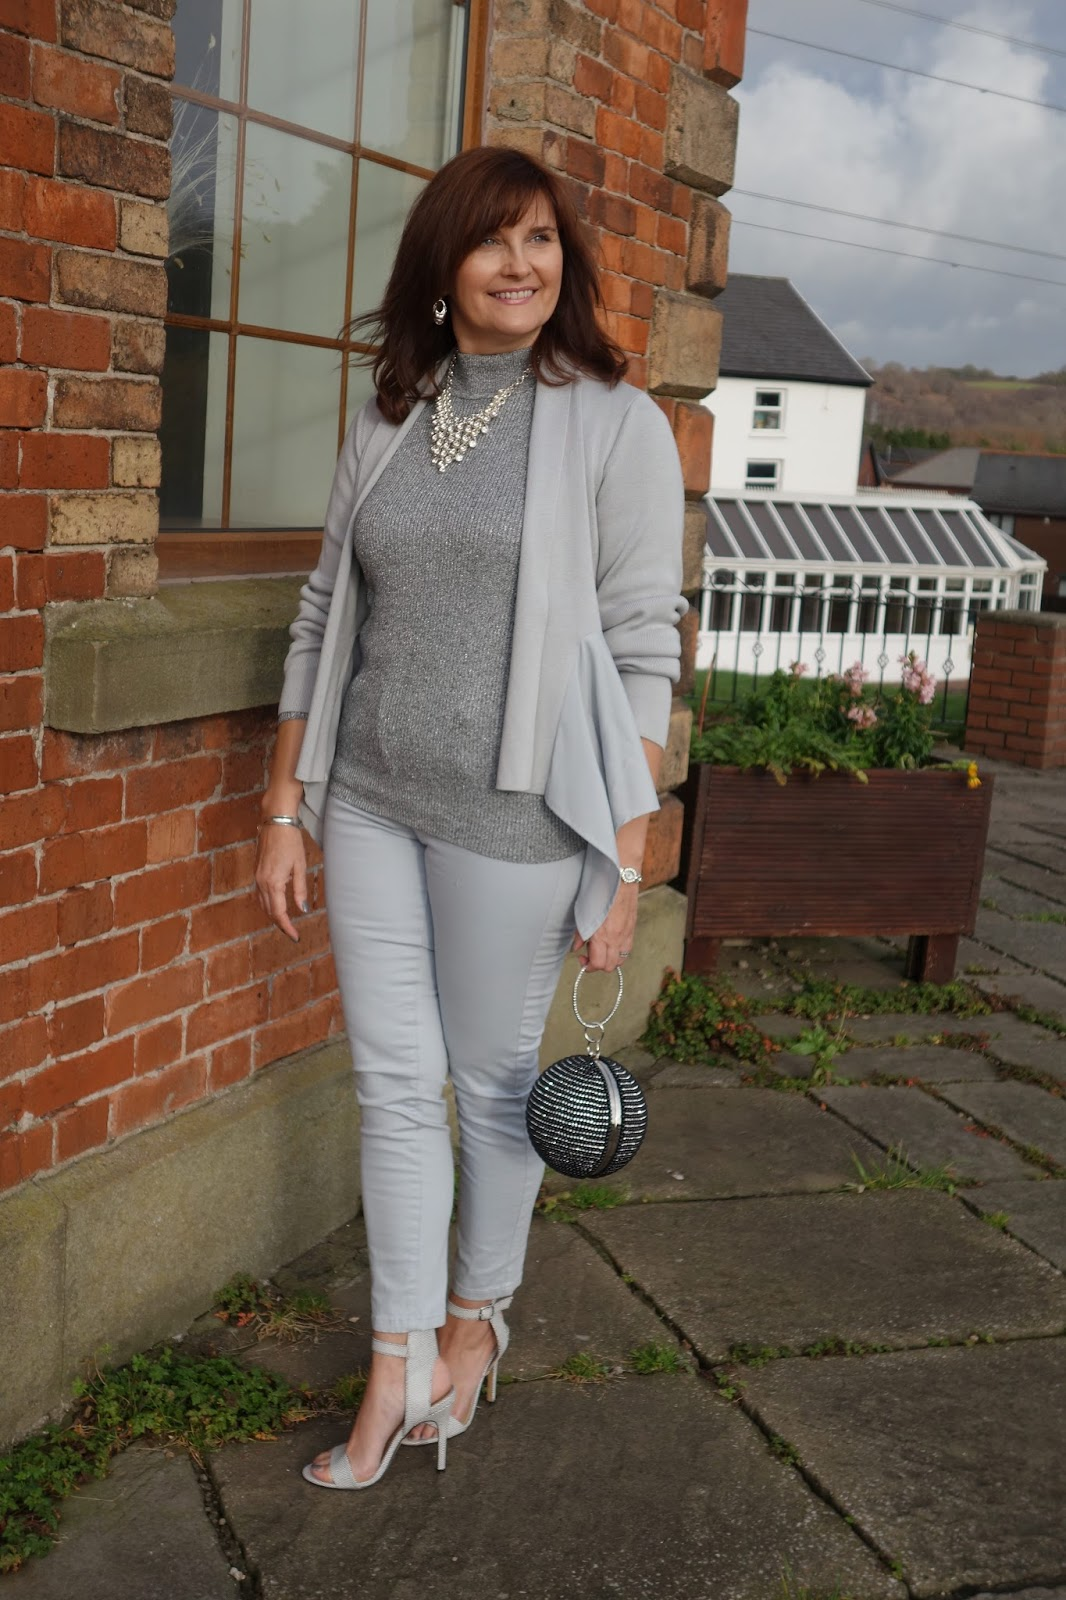 Michelle, The Barefaced Chic wears grey Christmas outfit with statement bag and heels